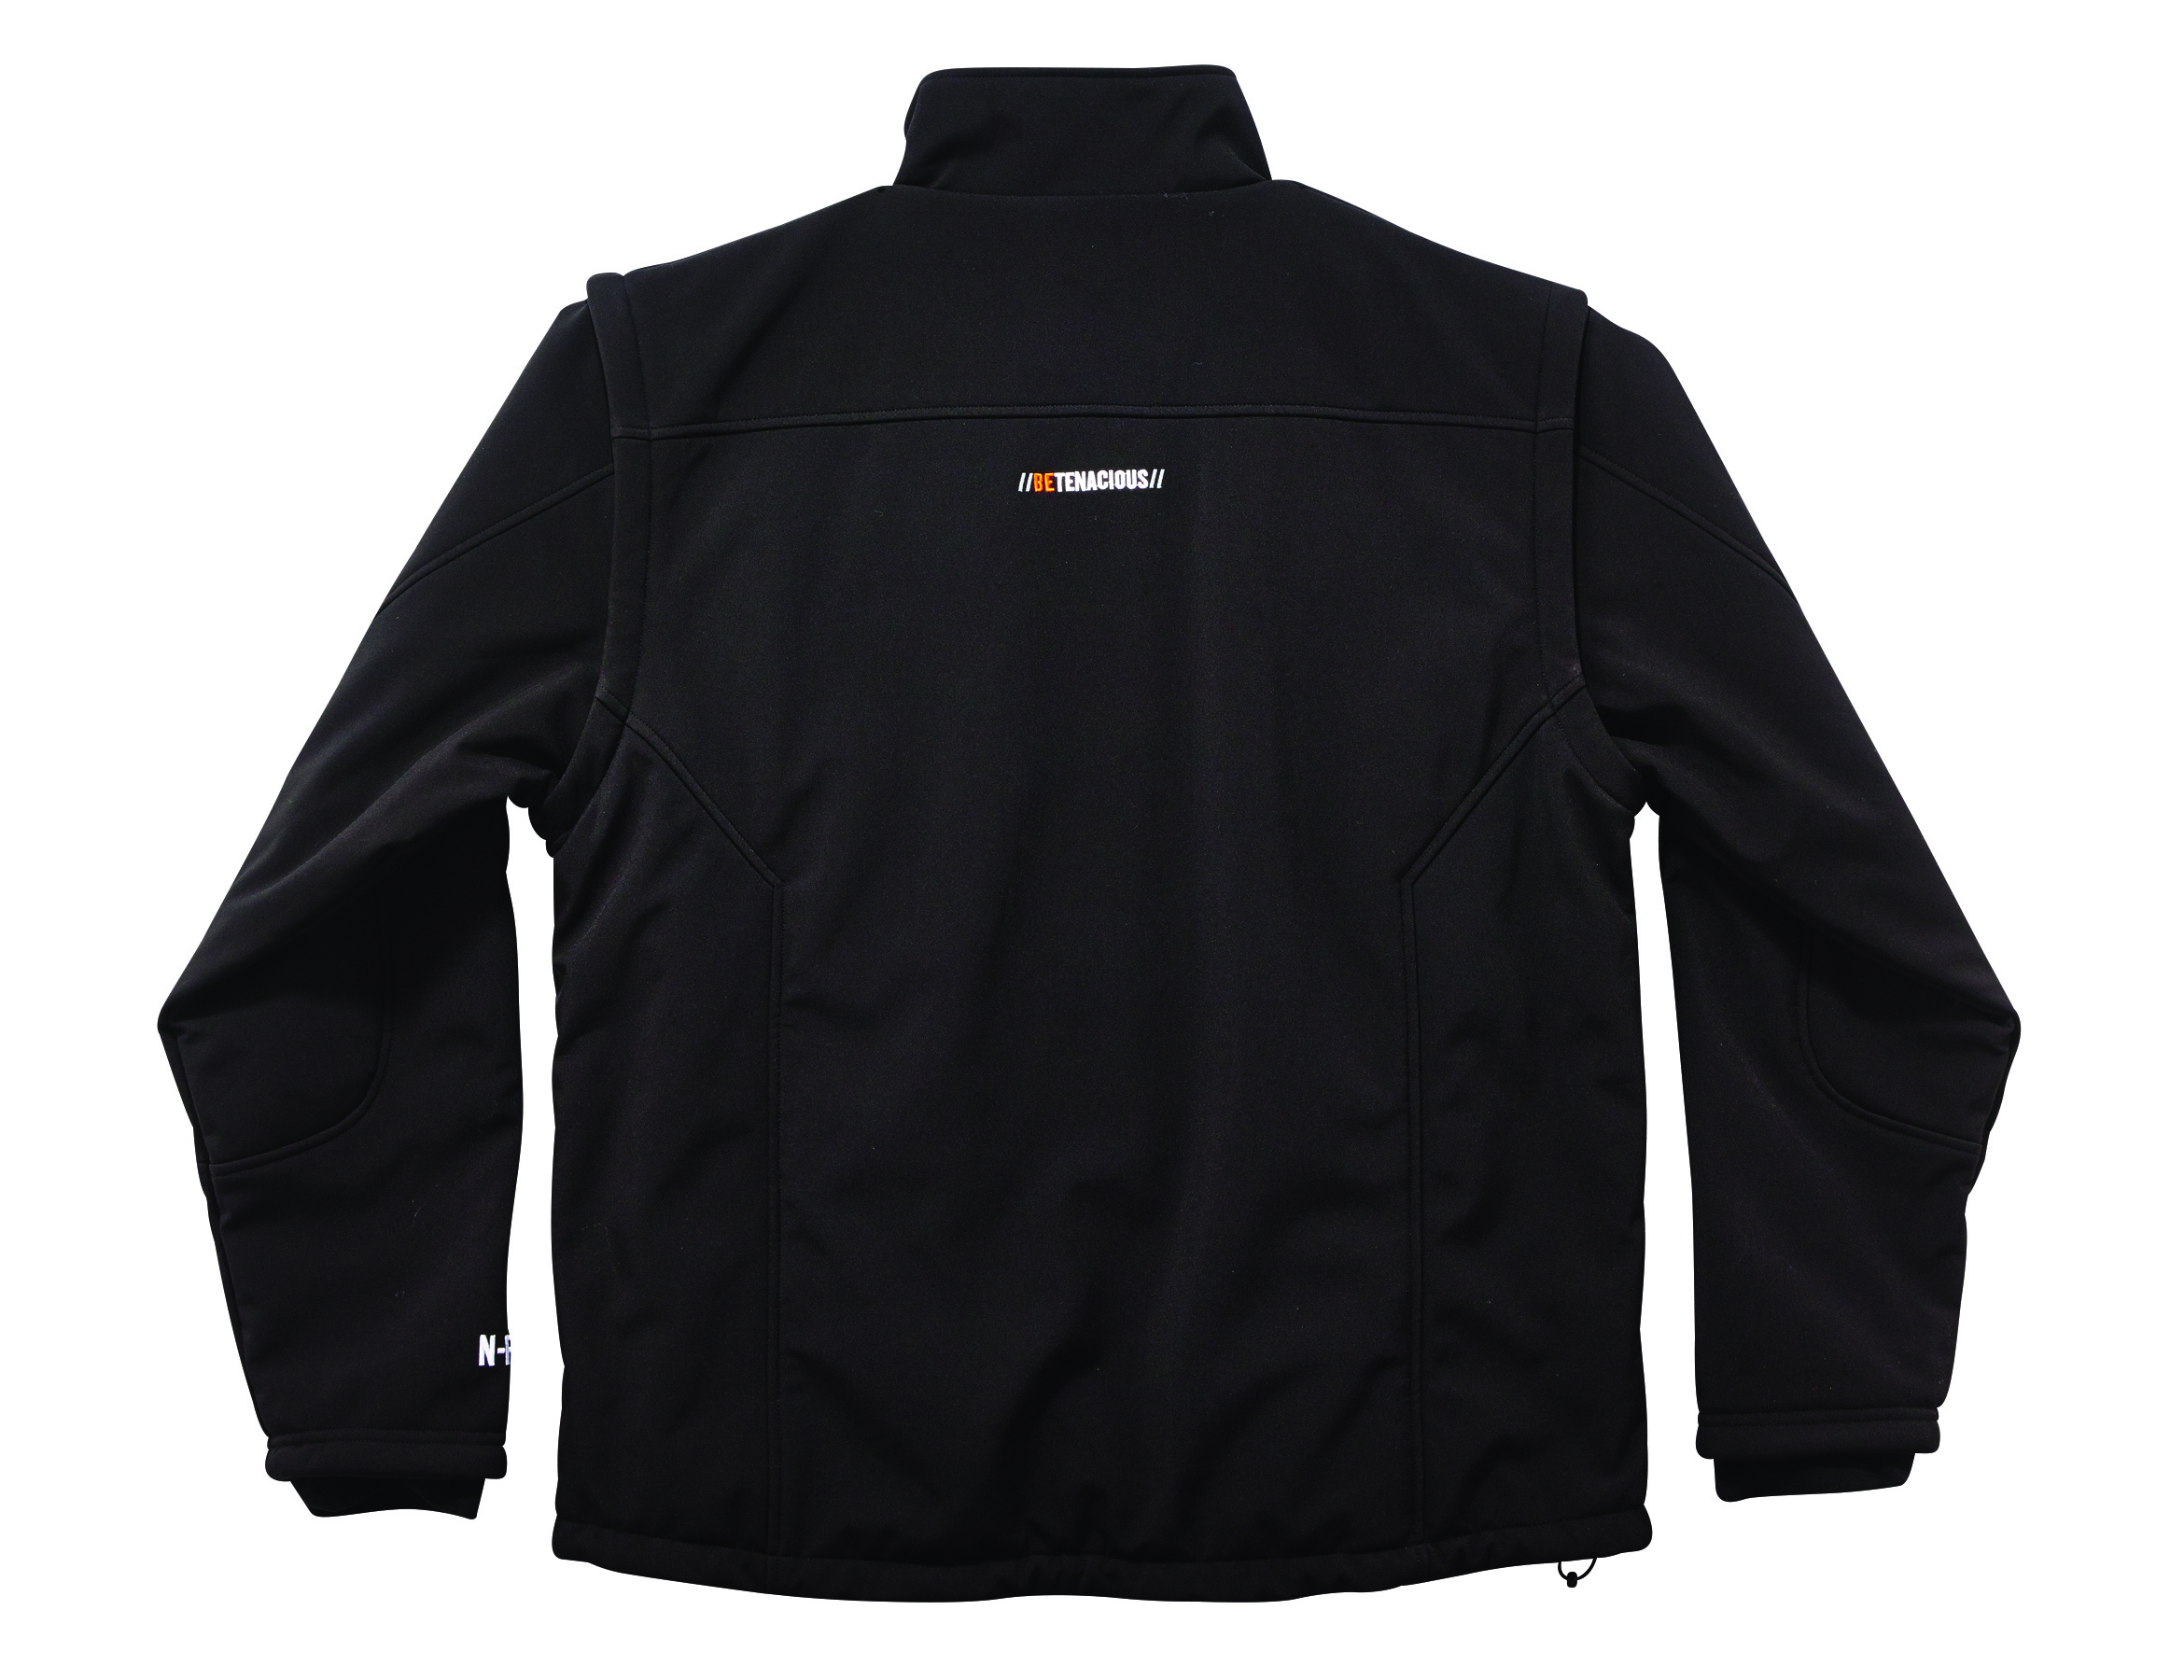 Ergodyne Core Performance Work Wear 6490 Heated Jacket with Removable Sleeves from GME Supply